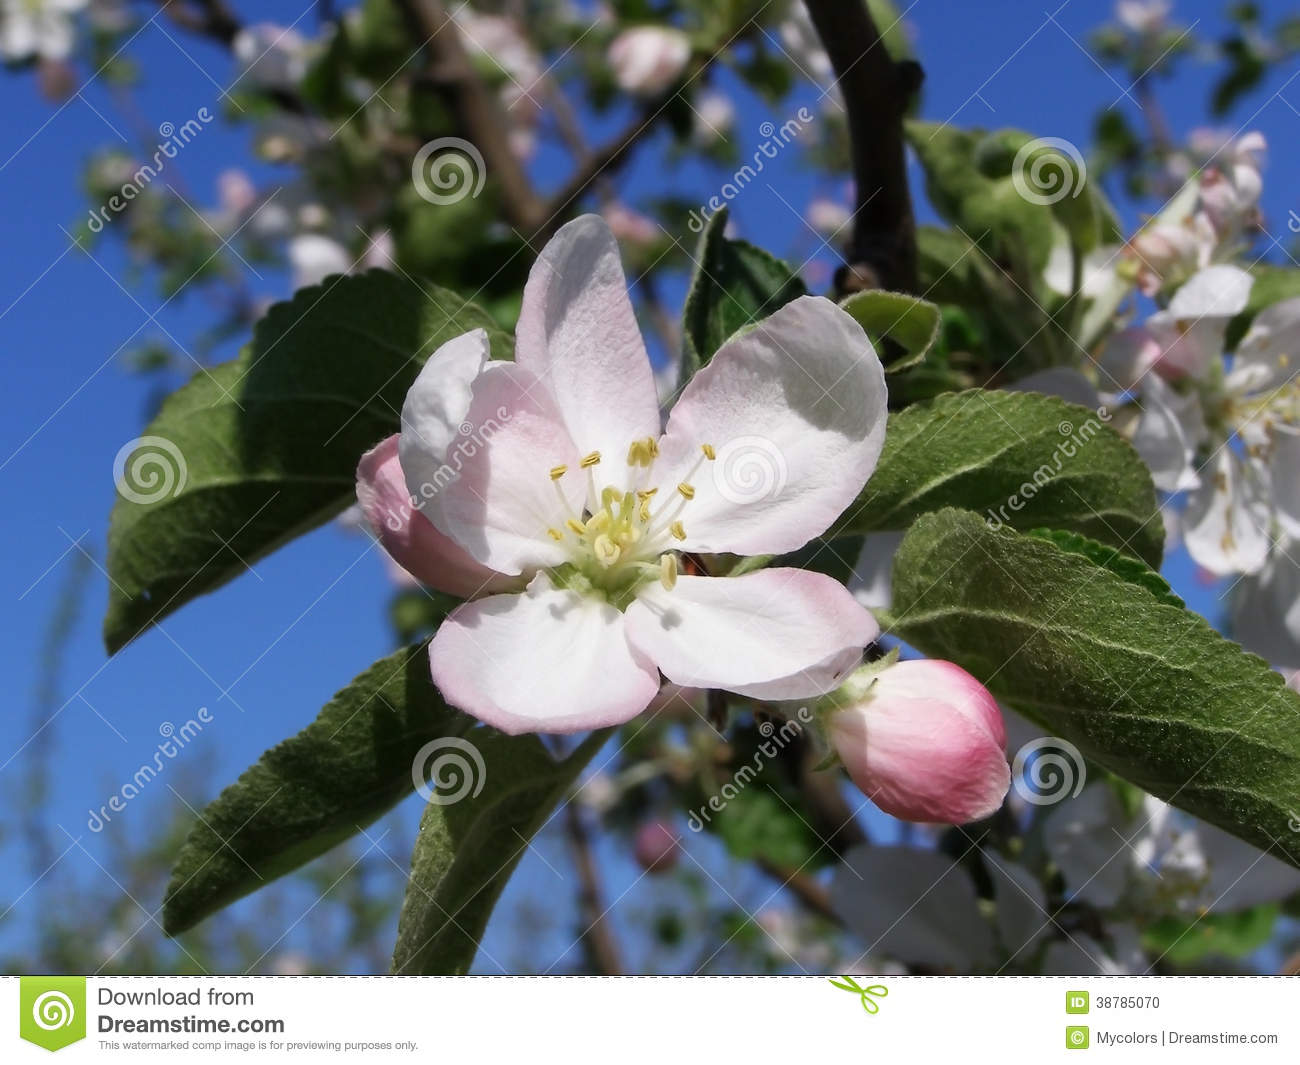 White Flowers On A Tree In A Spring Garden Stock Photo Image Of